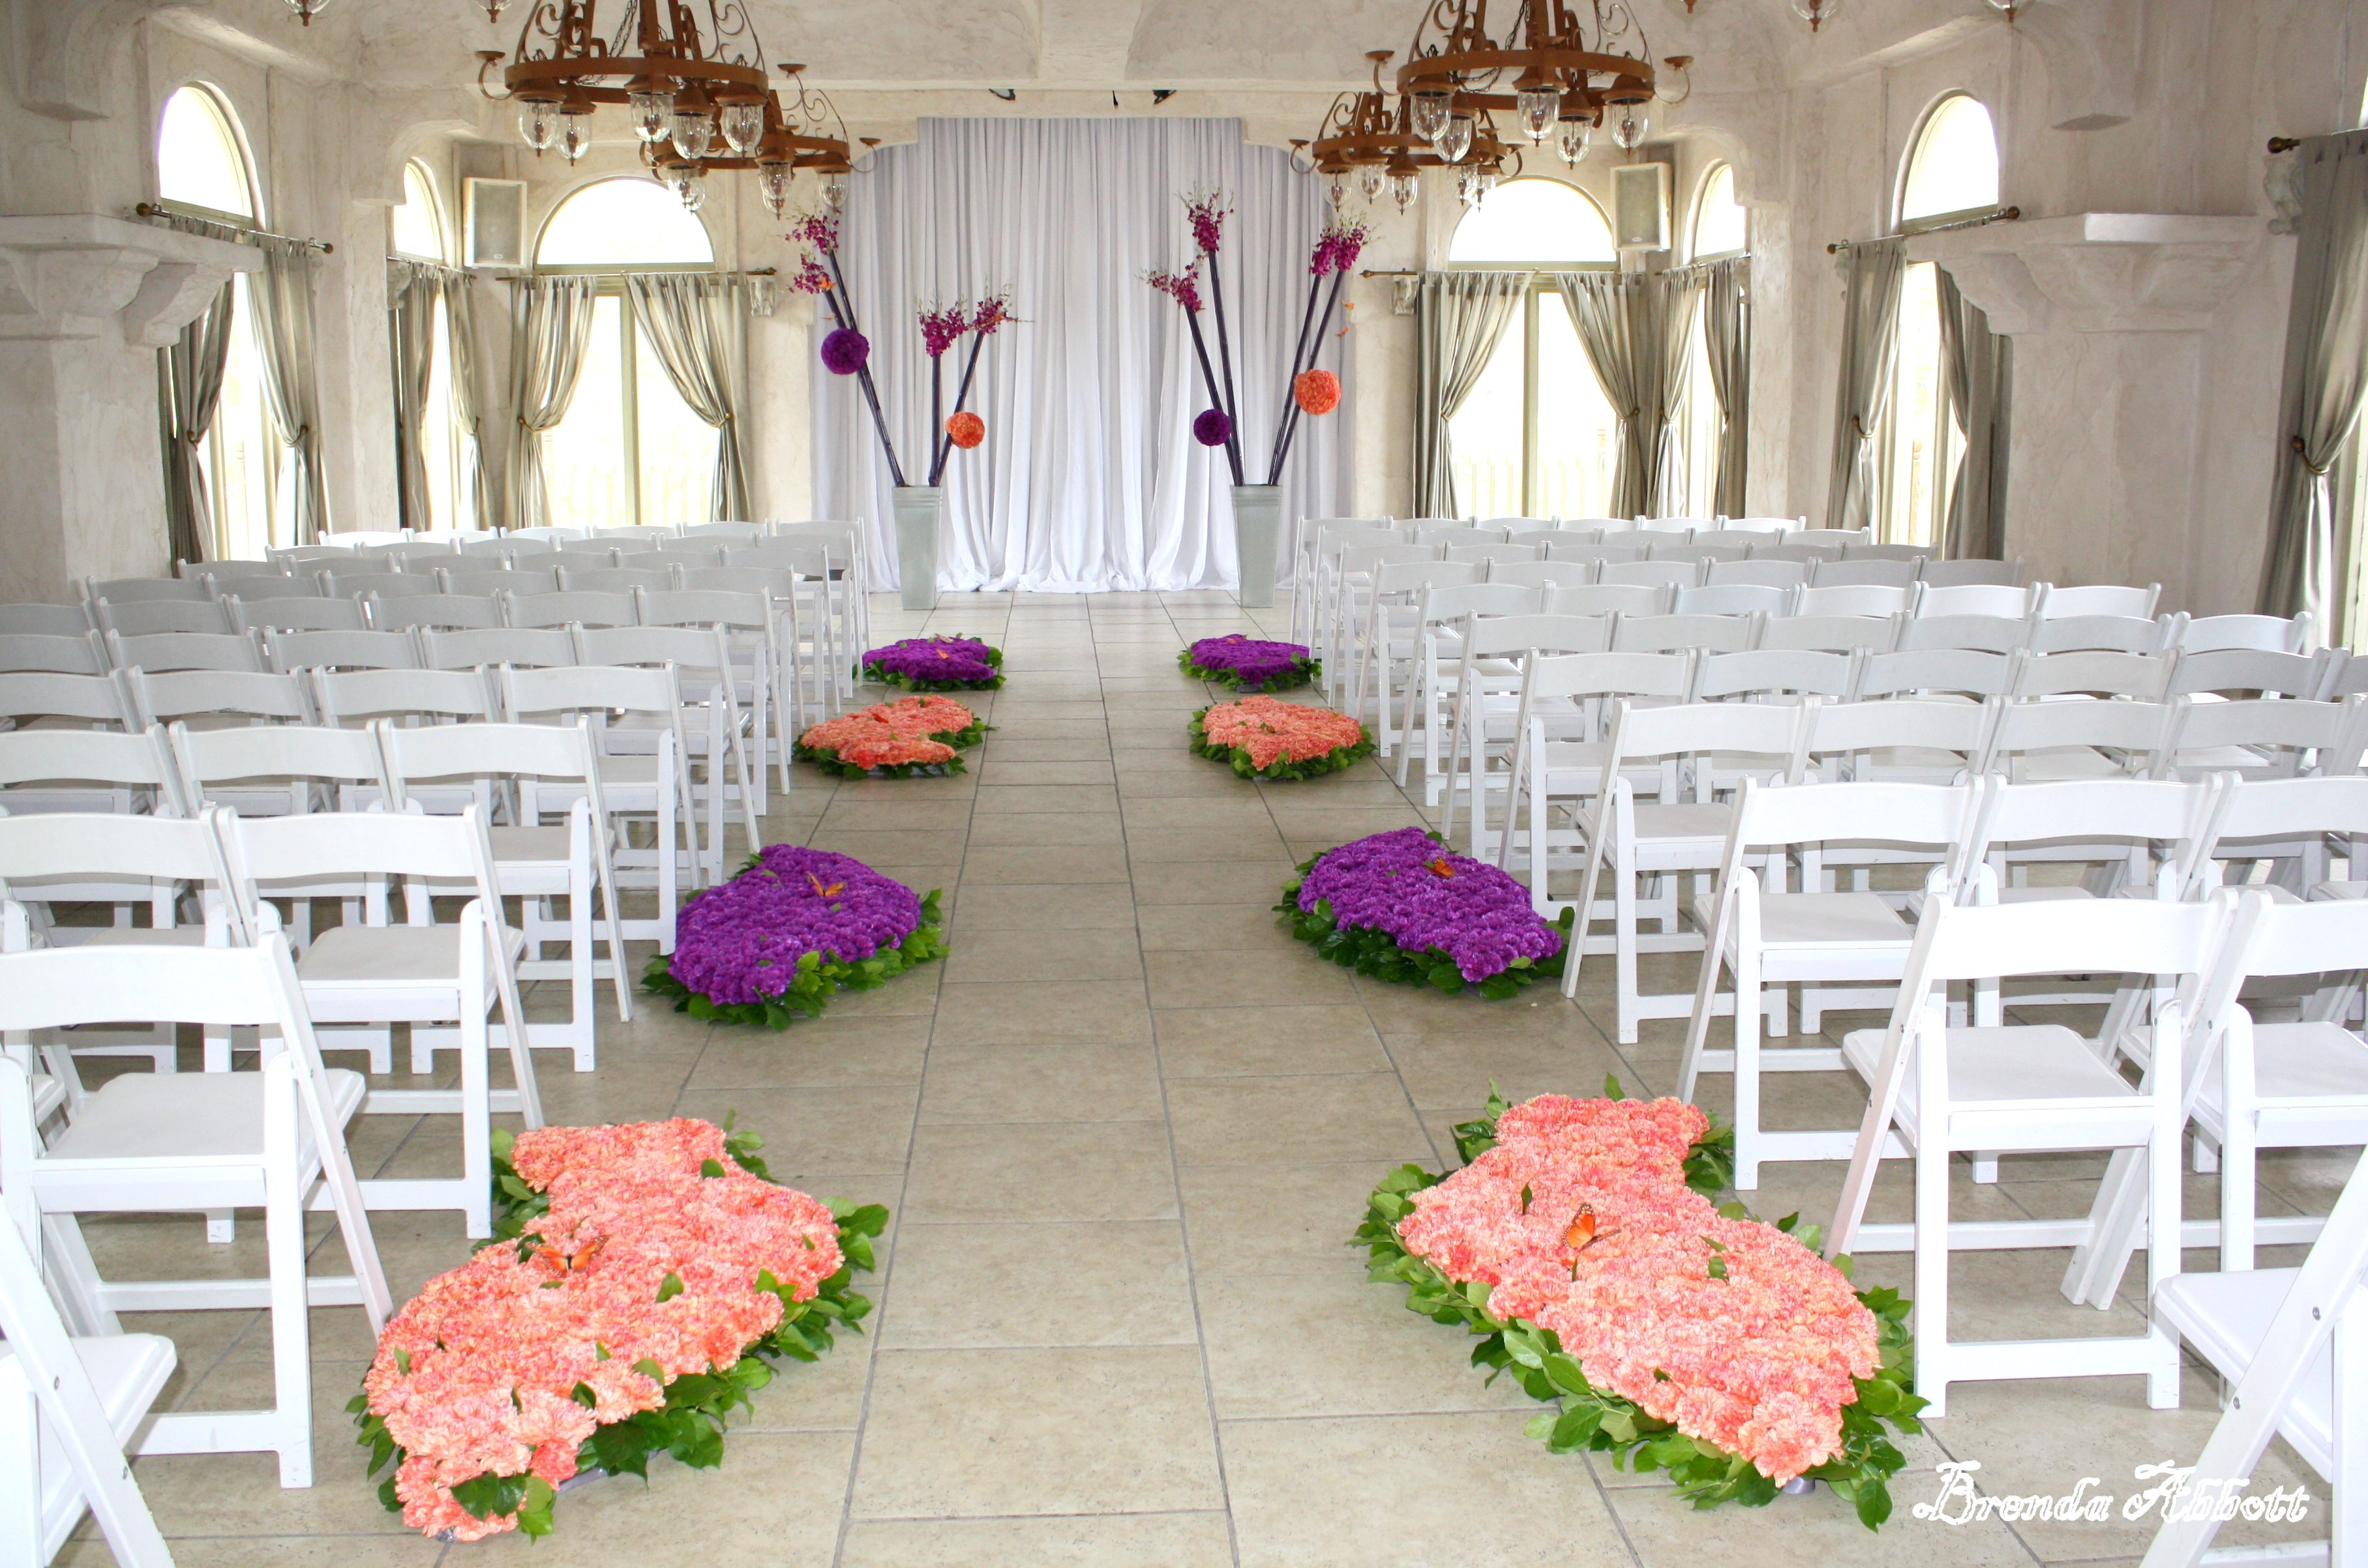 Ceremony, Flowers & Decor, orange, purple, Ceremony Flowers, Aisle Decor, Flowers, Aisle, Brenda abbott floral design